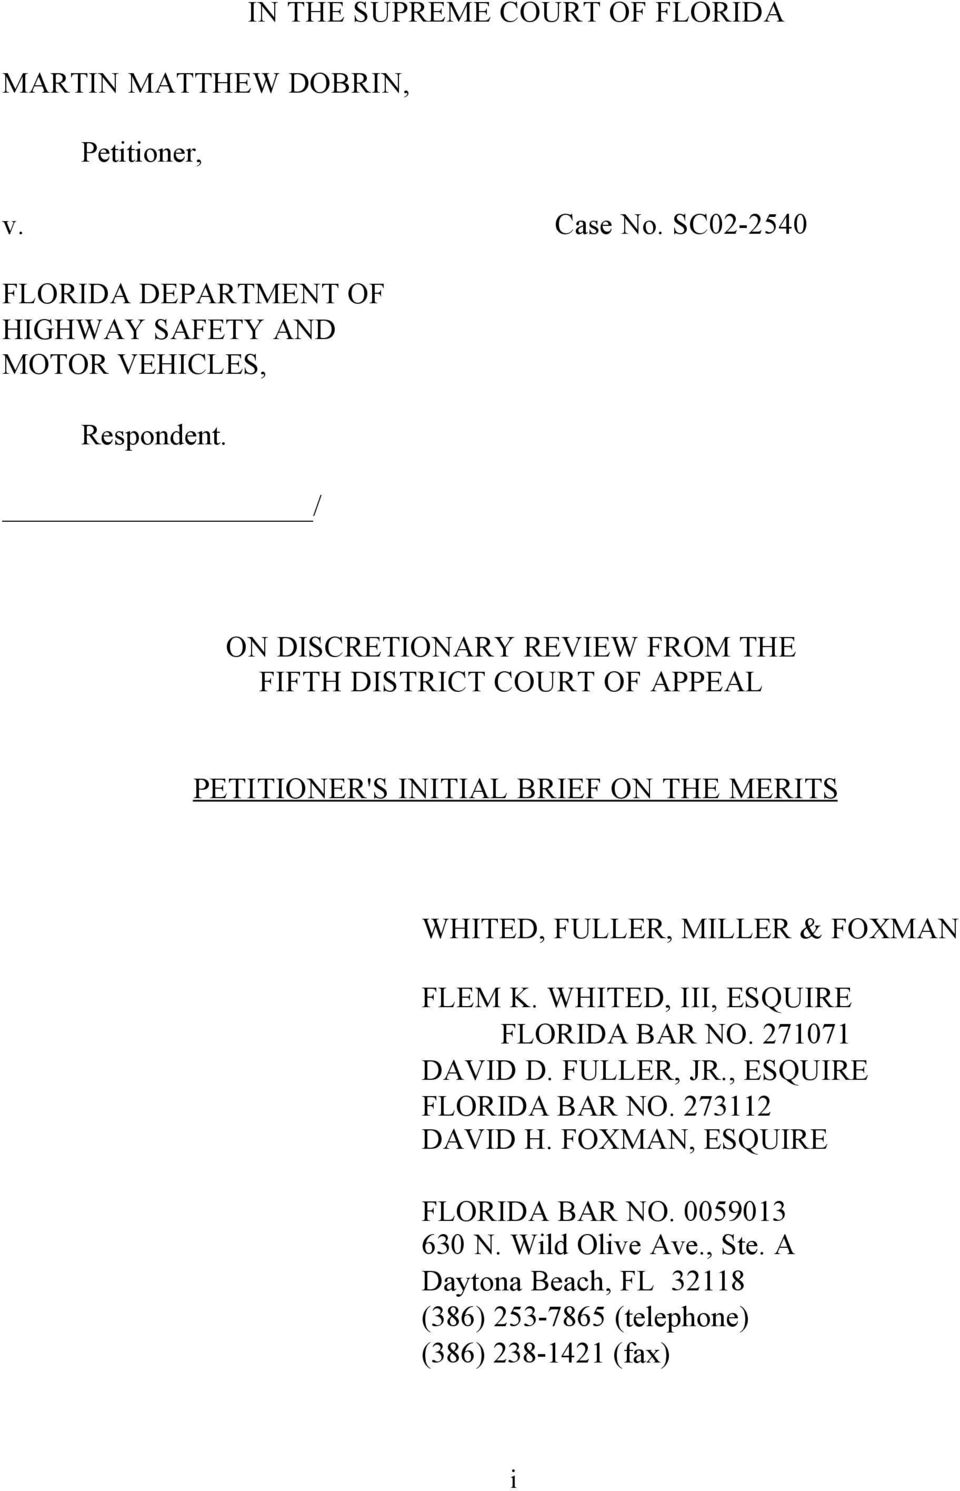 / ON DISCRETIONARY REVIEW FROM THE FIFTH DISTRICT COURT OF APPEAL PETITIONER'S INITIAL BRIEF ON THE MERITS WHITED, FULLER, MILLER & FOXMAN